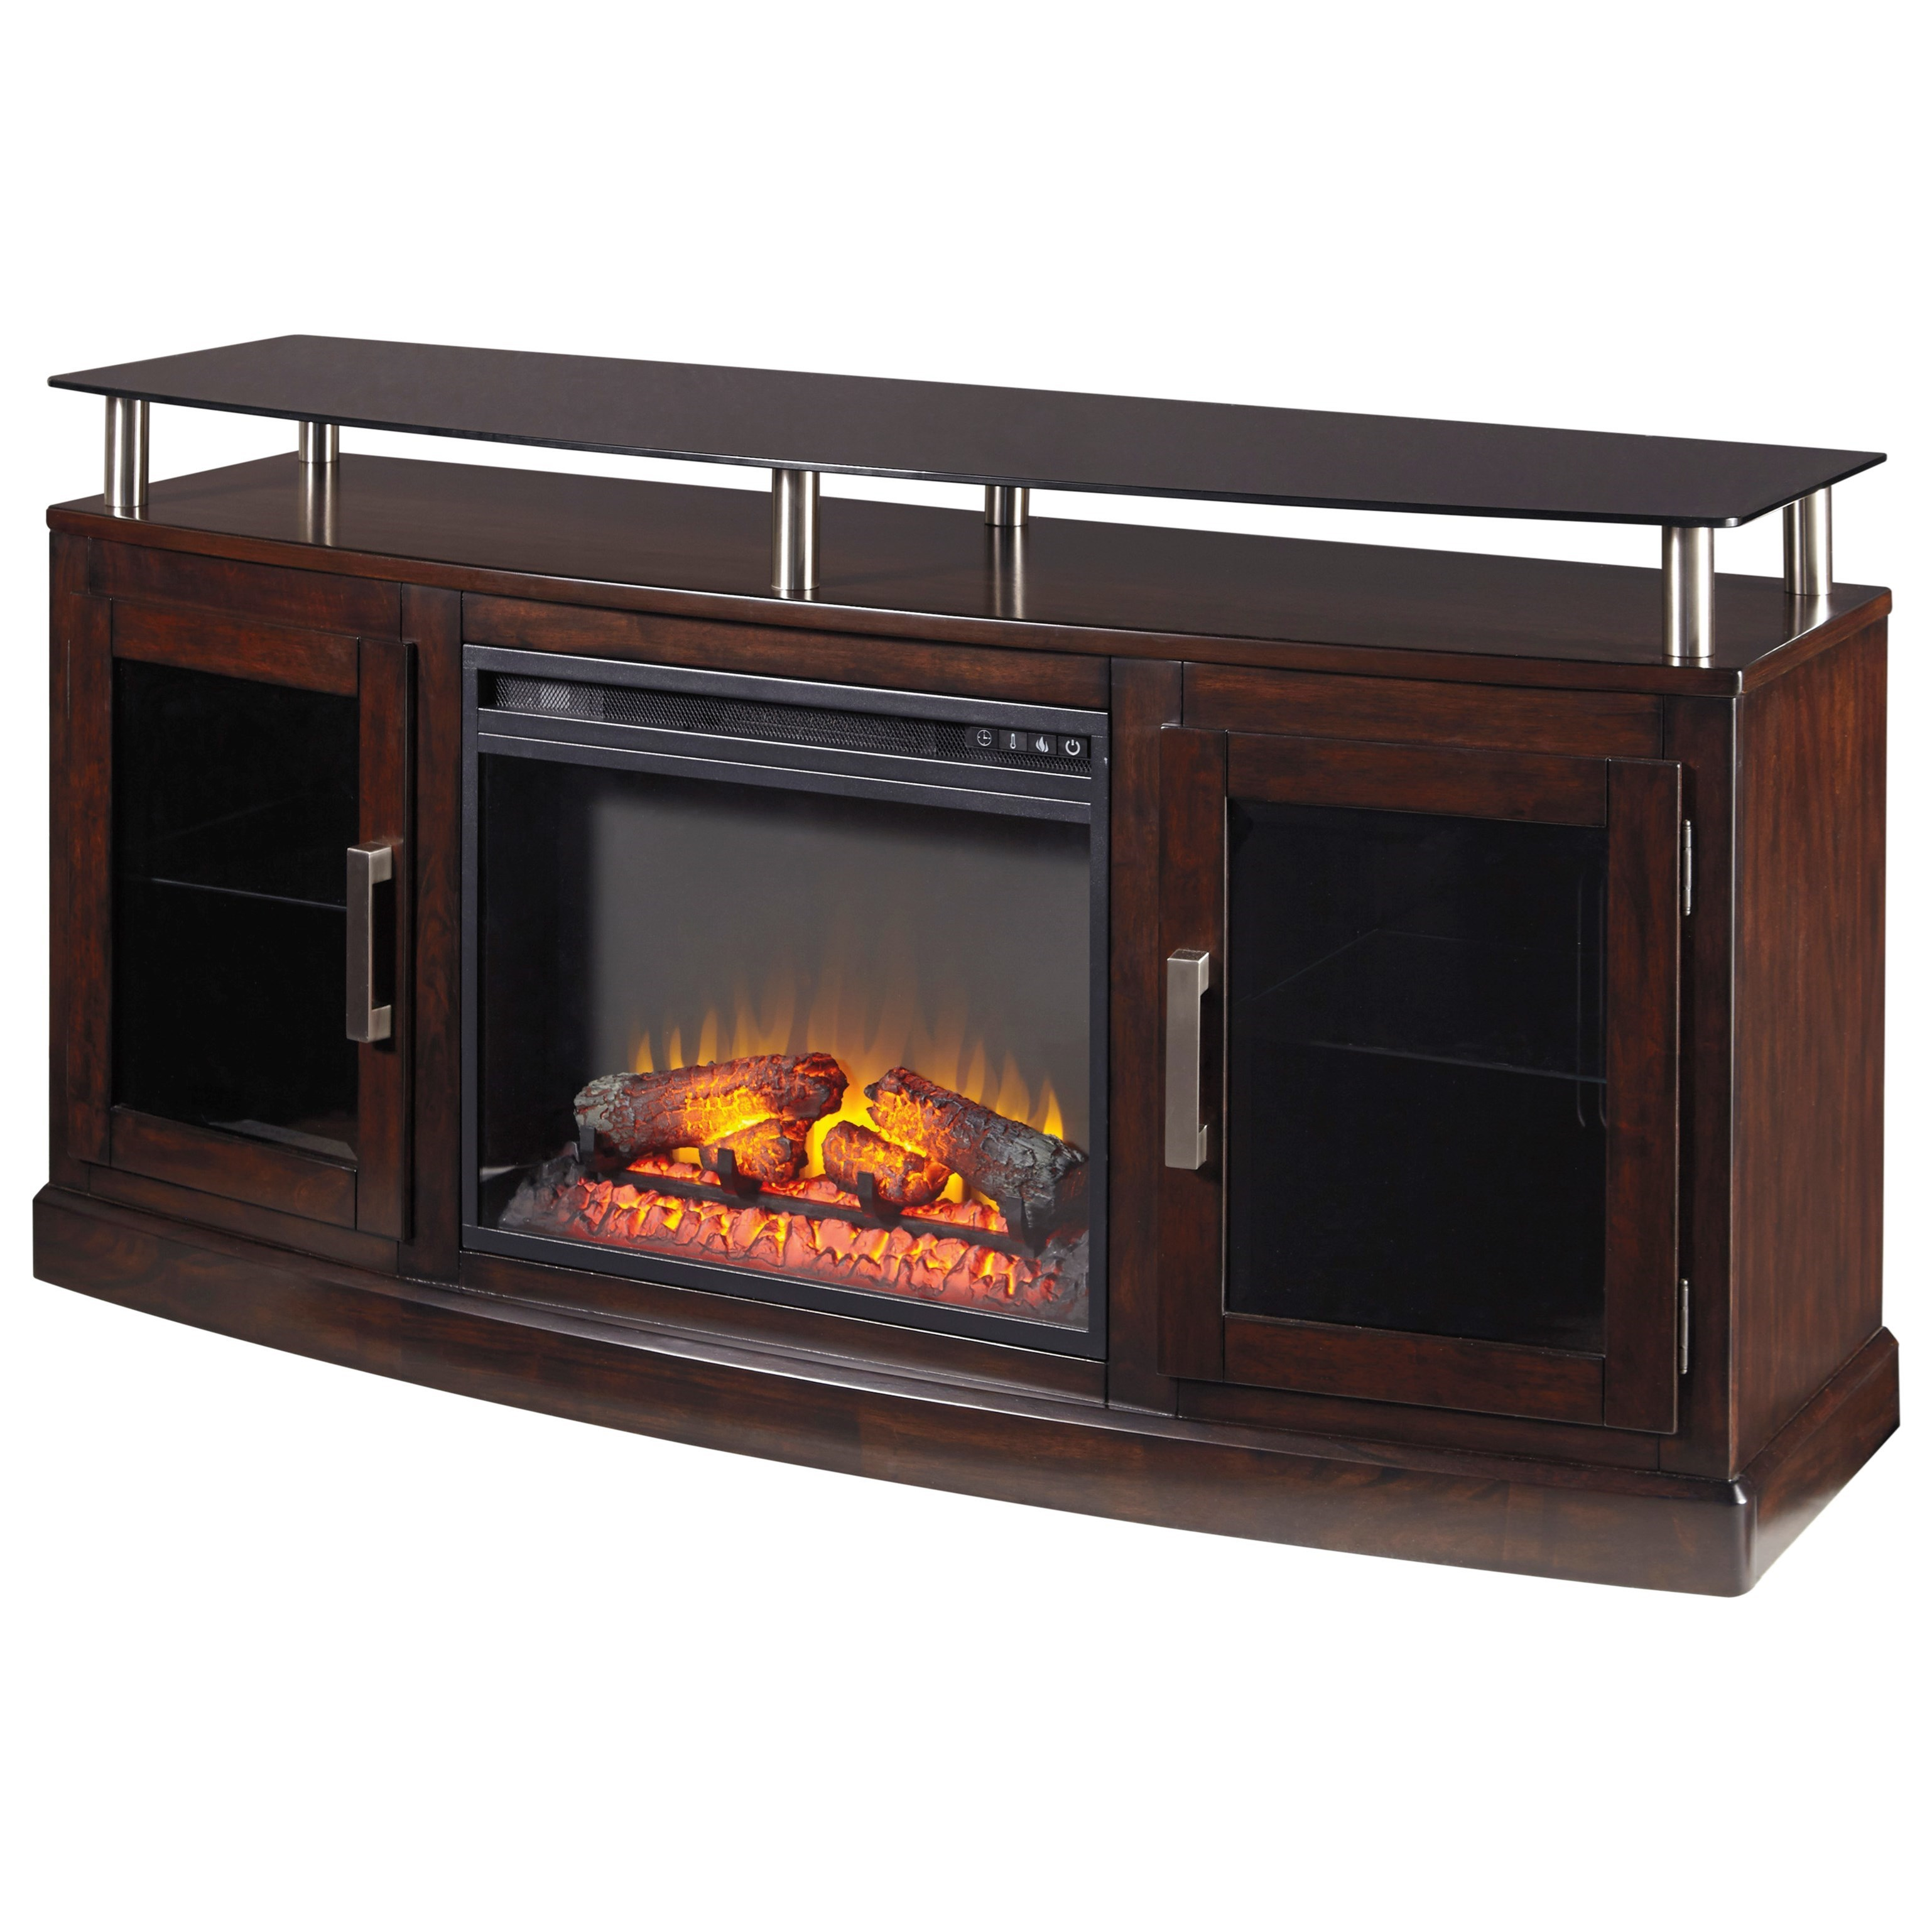 Chanceen Medium TV Stand with Fireplace Insert by Ashley Furniture Signature Design at Del Sol Furniture